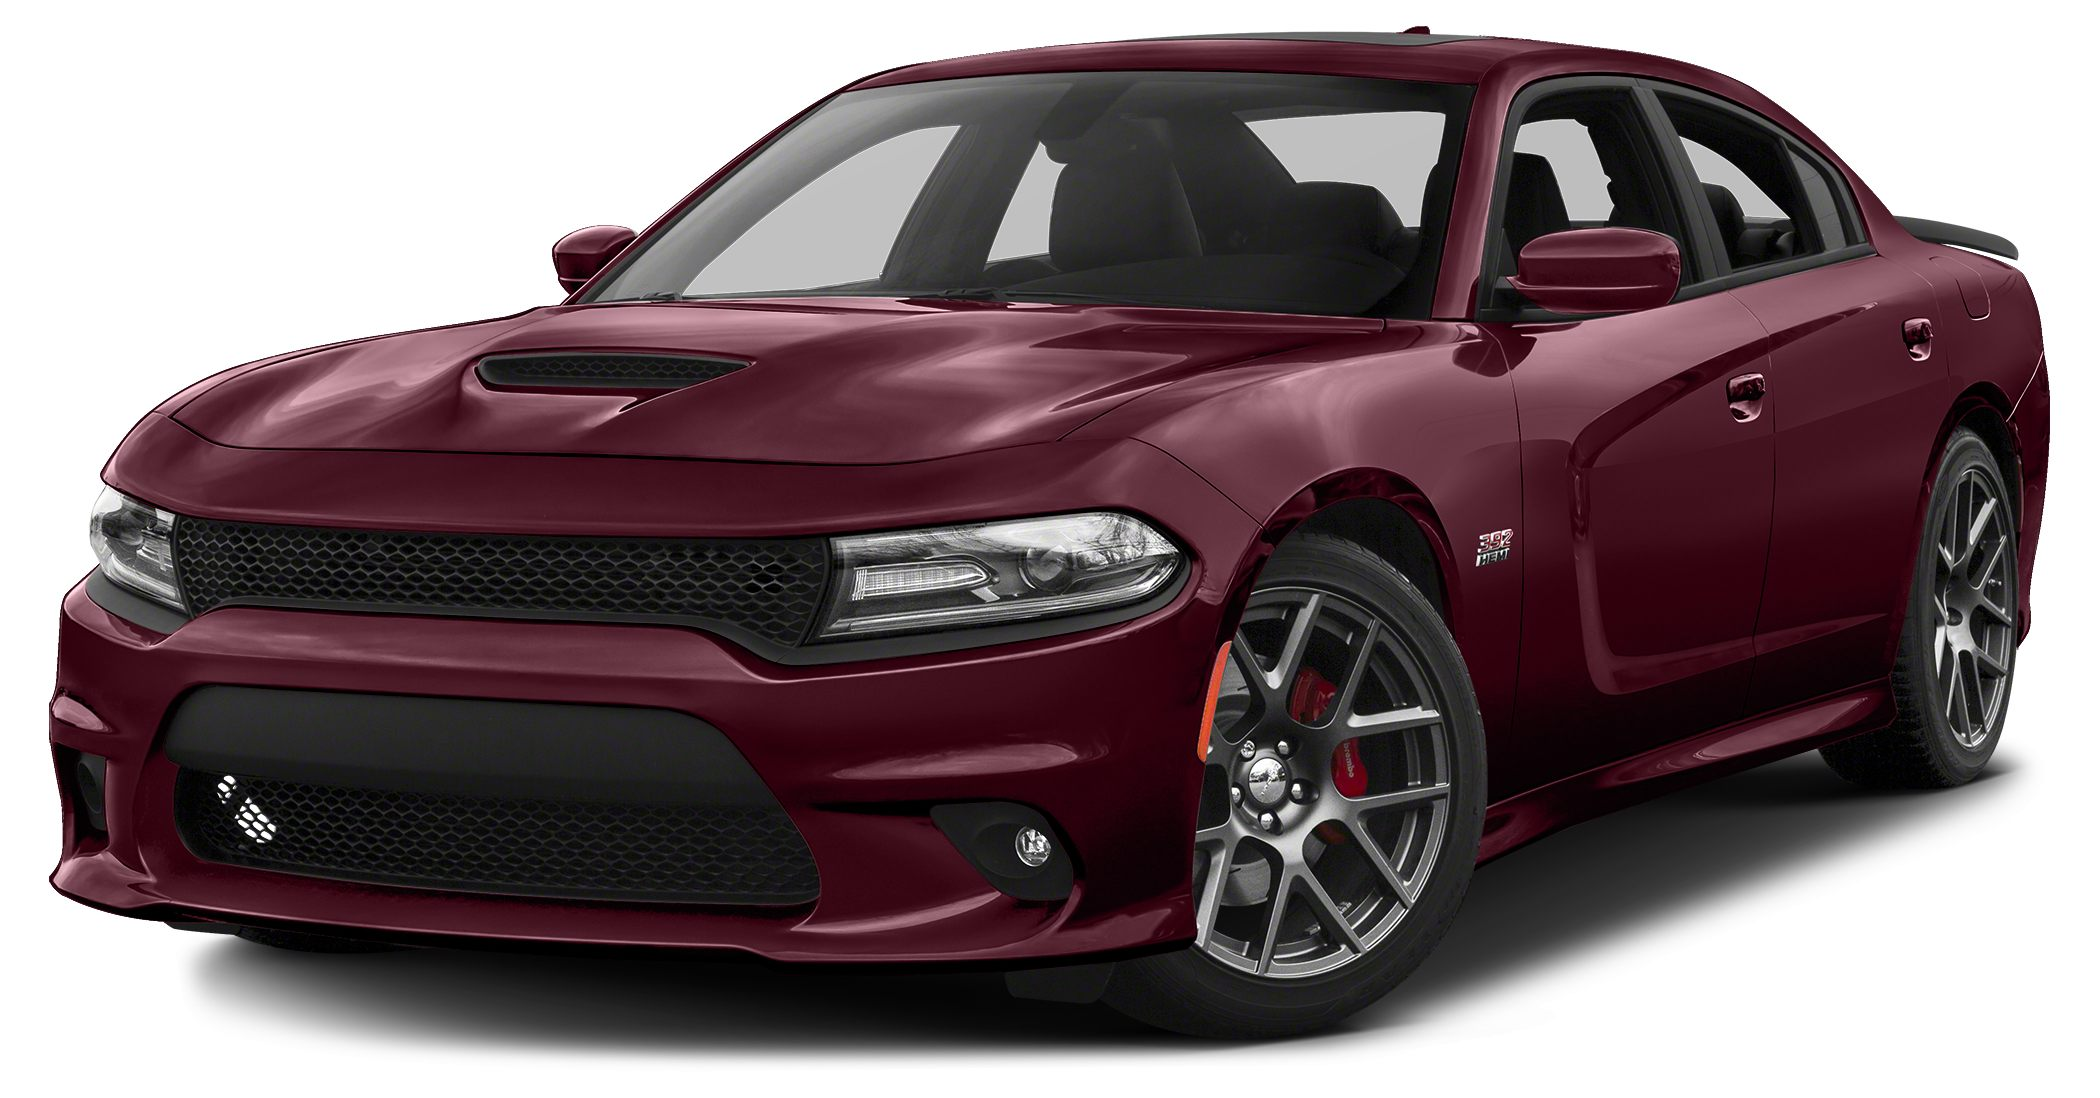 2017 Dodge Charger RT 392 Miles 4802Color Dark Garnet Red Pearlcoat Stock 18F44A VIN 2C3CDX